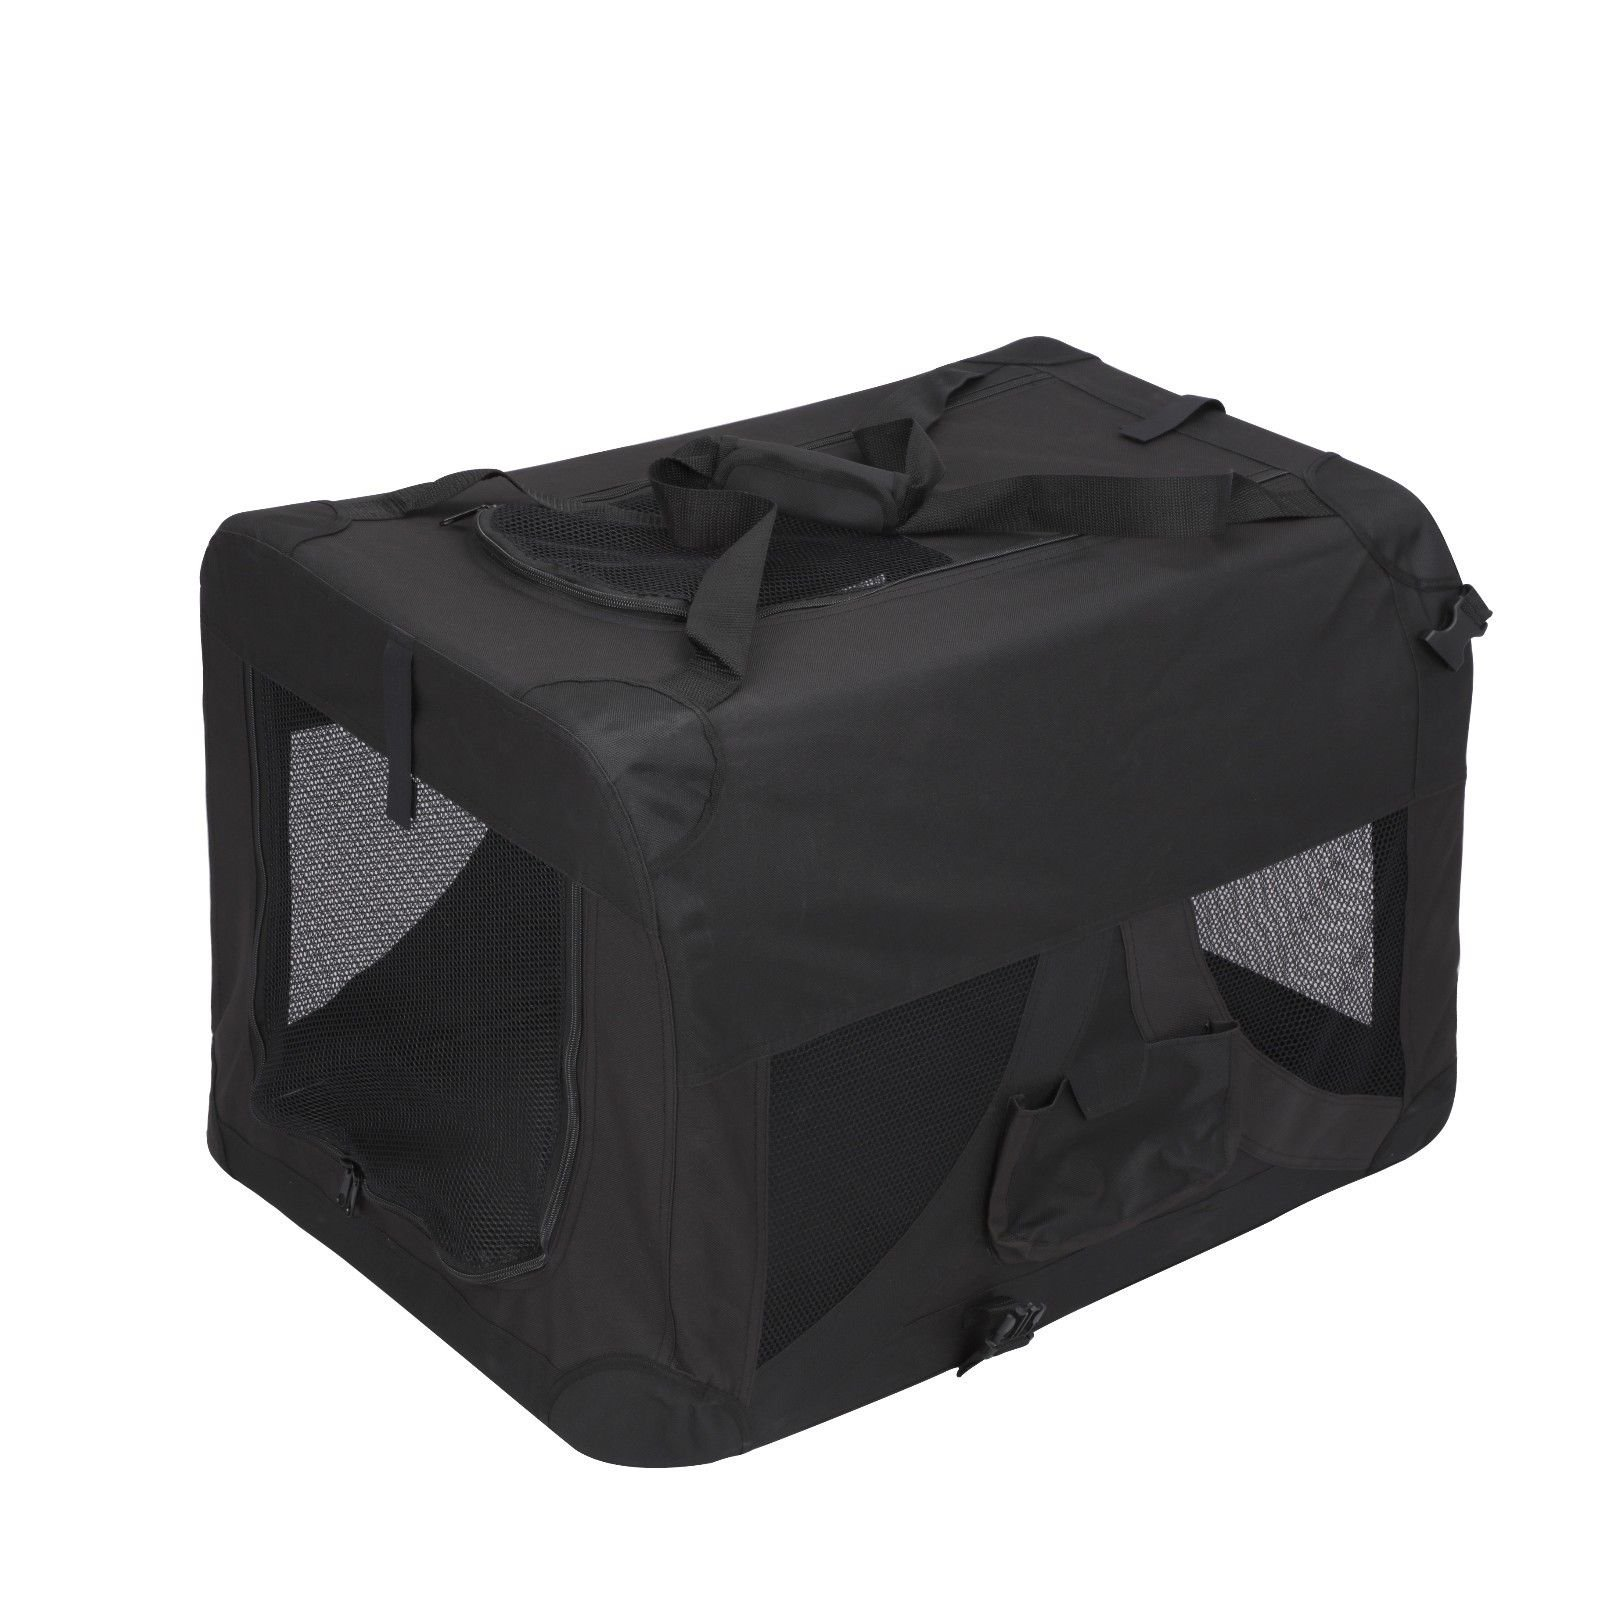 Magshion Folding Soft Crates Kennels Travel Carrier with Metal Frame, 28-Inch, for Pet Up to 40lb (Black)